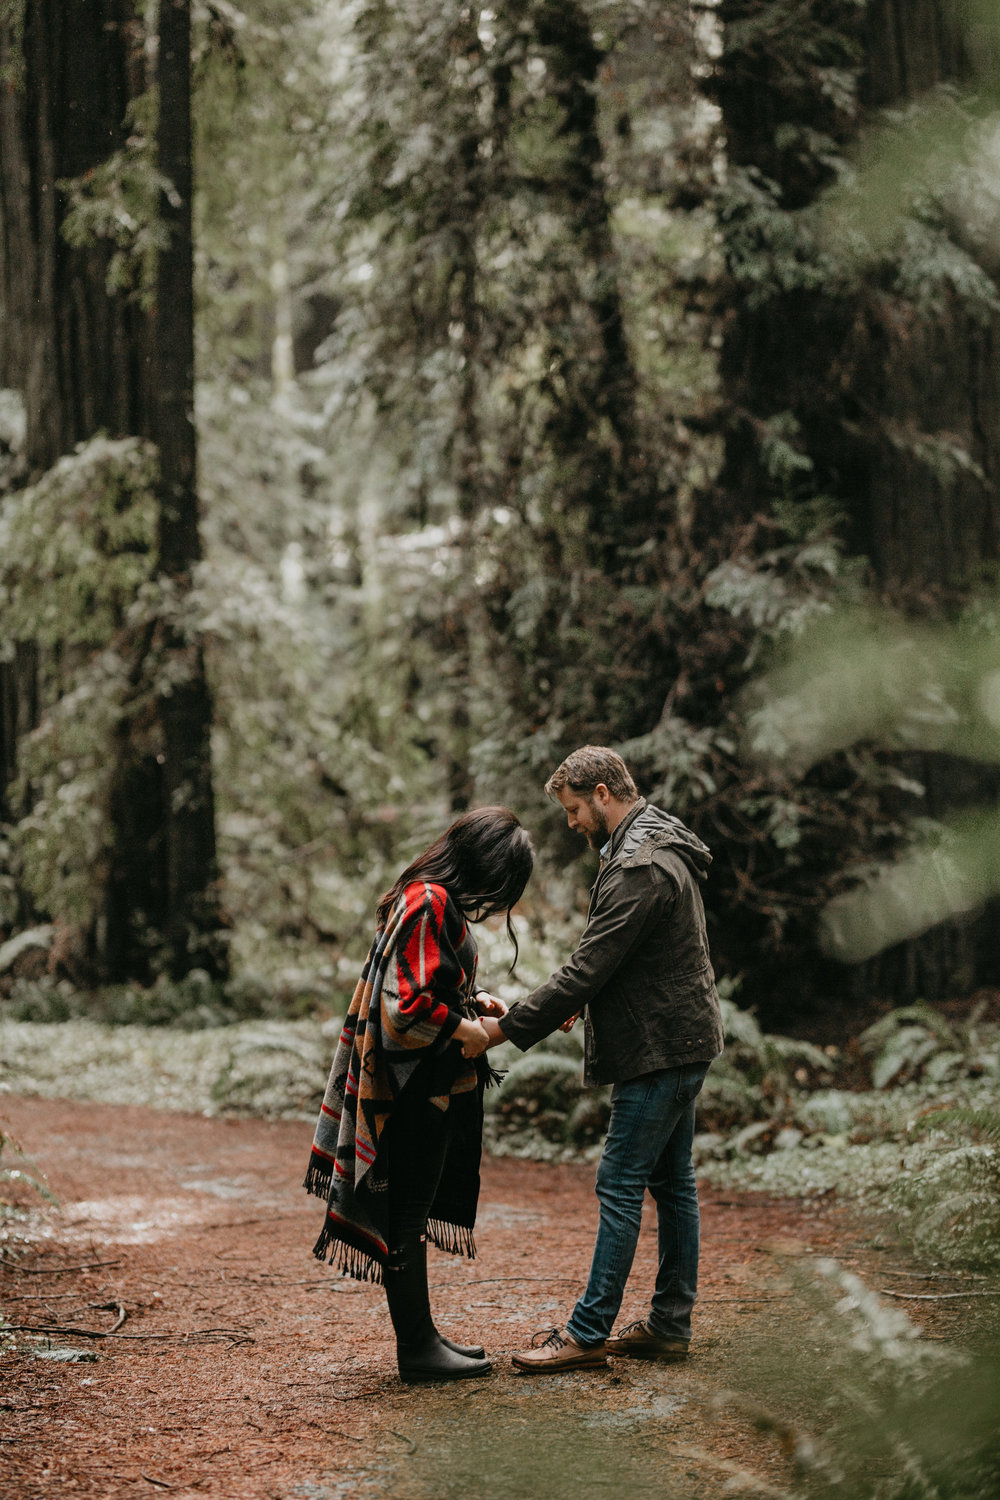 nicole-daacke-photography-redwoods-national-park-forest-rainy-foggy-adventure-engagement-session-humboldt-county-old-growth-redwood-tree-elopement-intimate-wedding-photographer-15.jpg